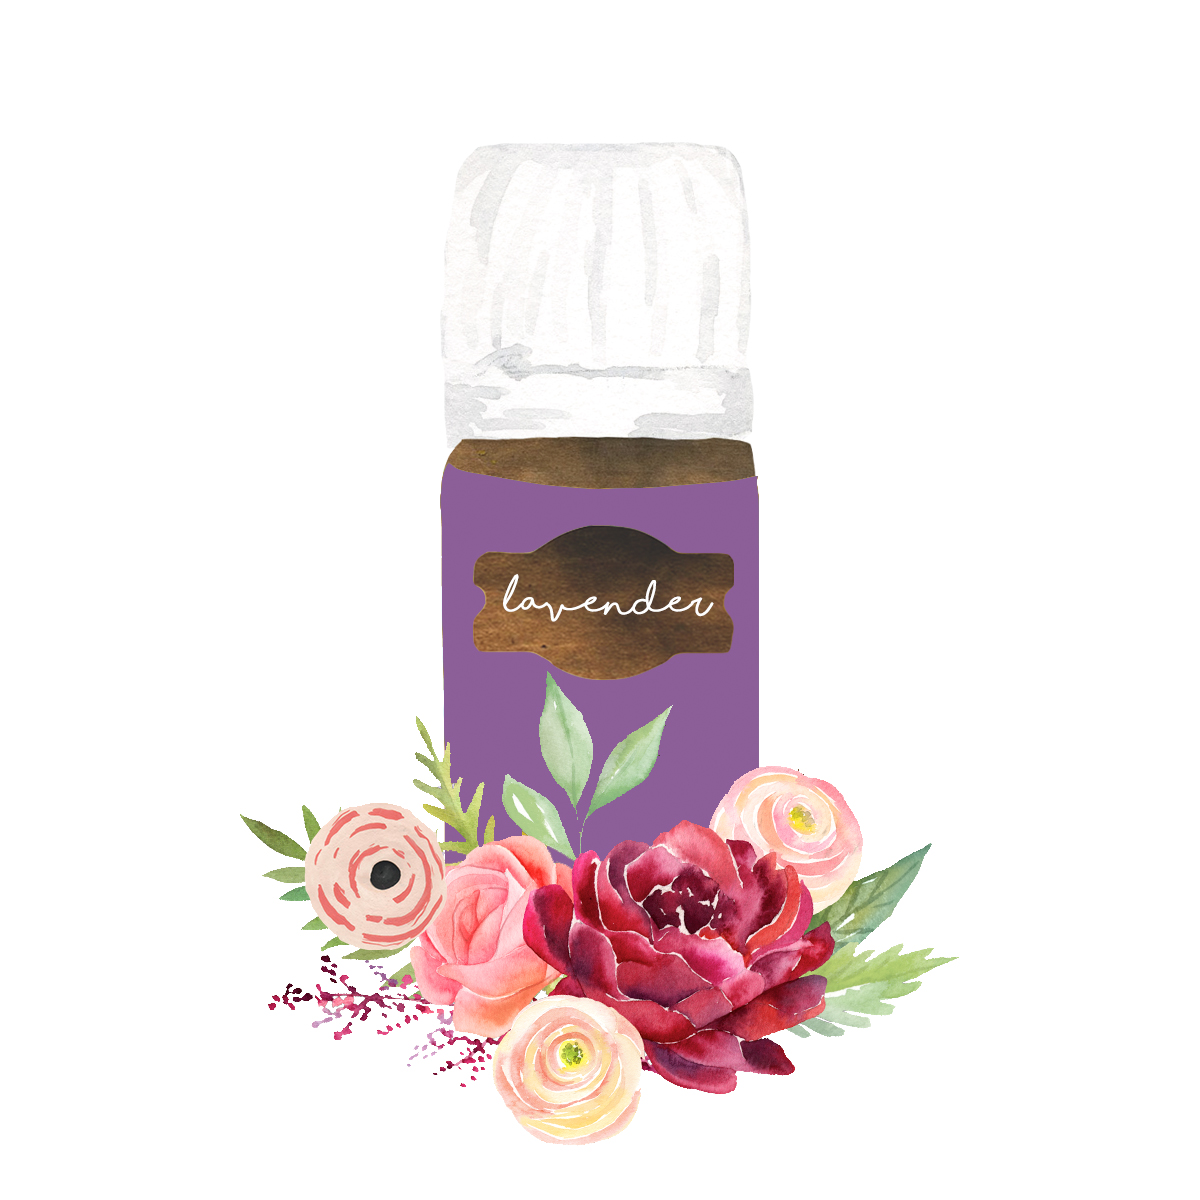 Lavender - Swiss Army Knife of Oils; diffuse it or rub it on your skin for health and relaxation.